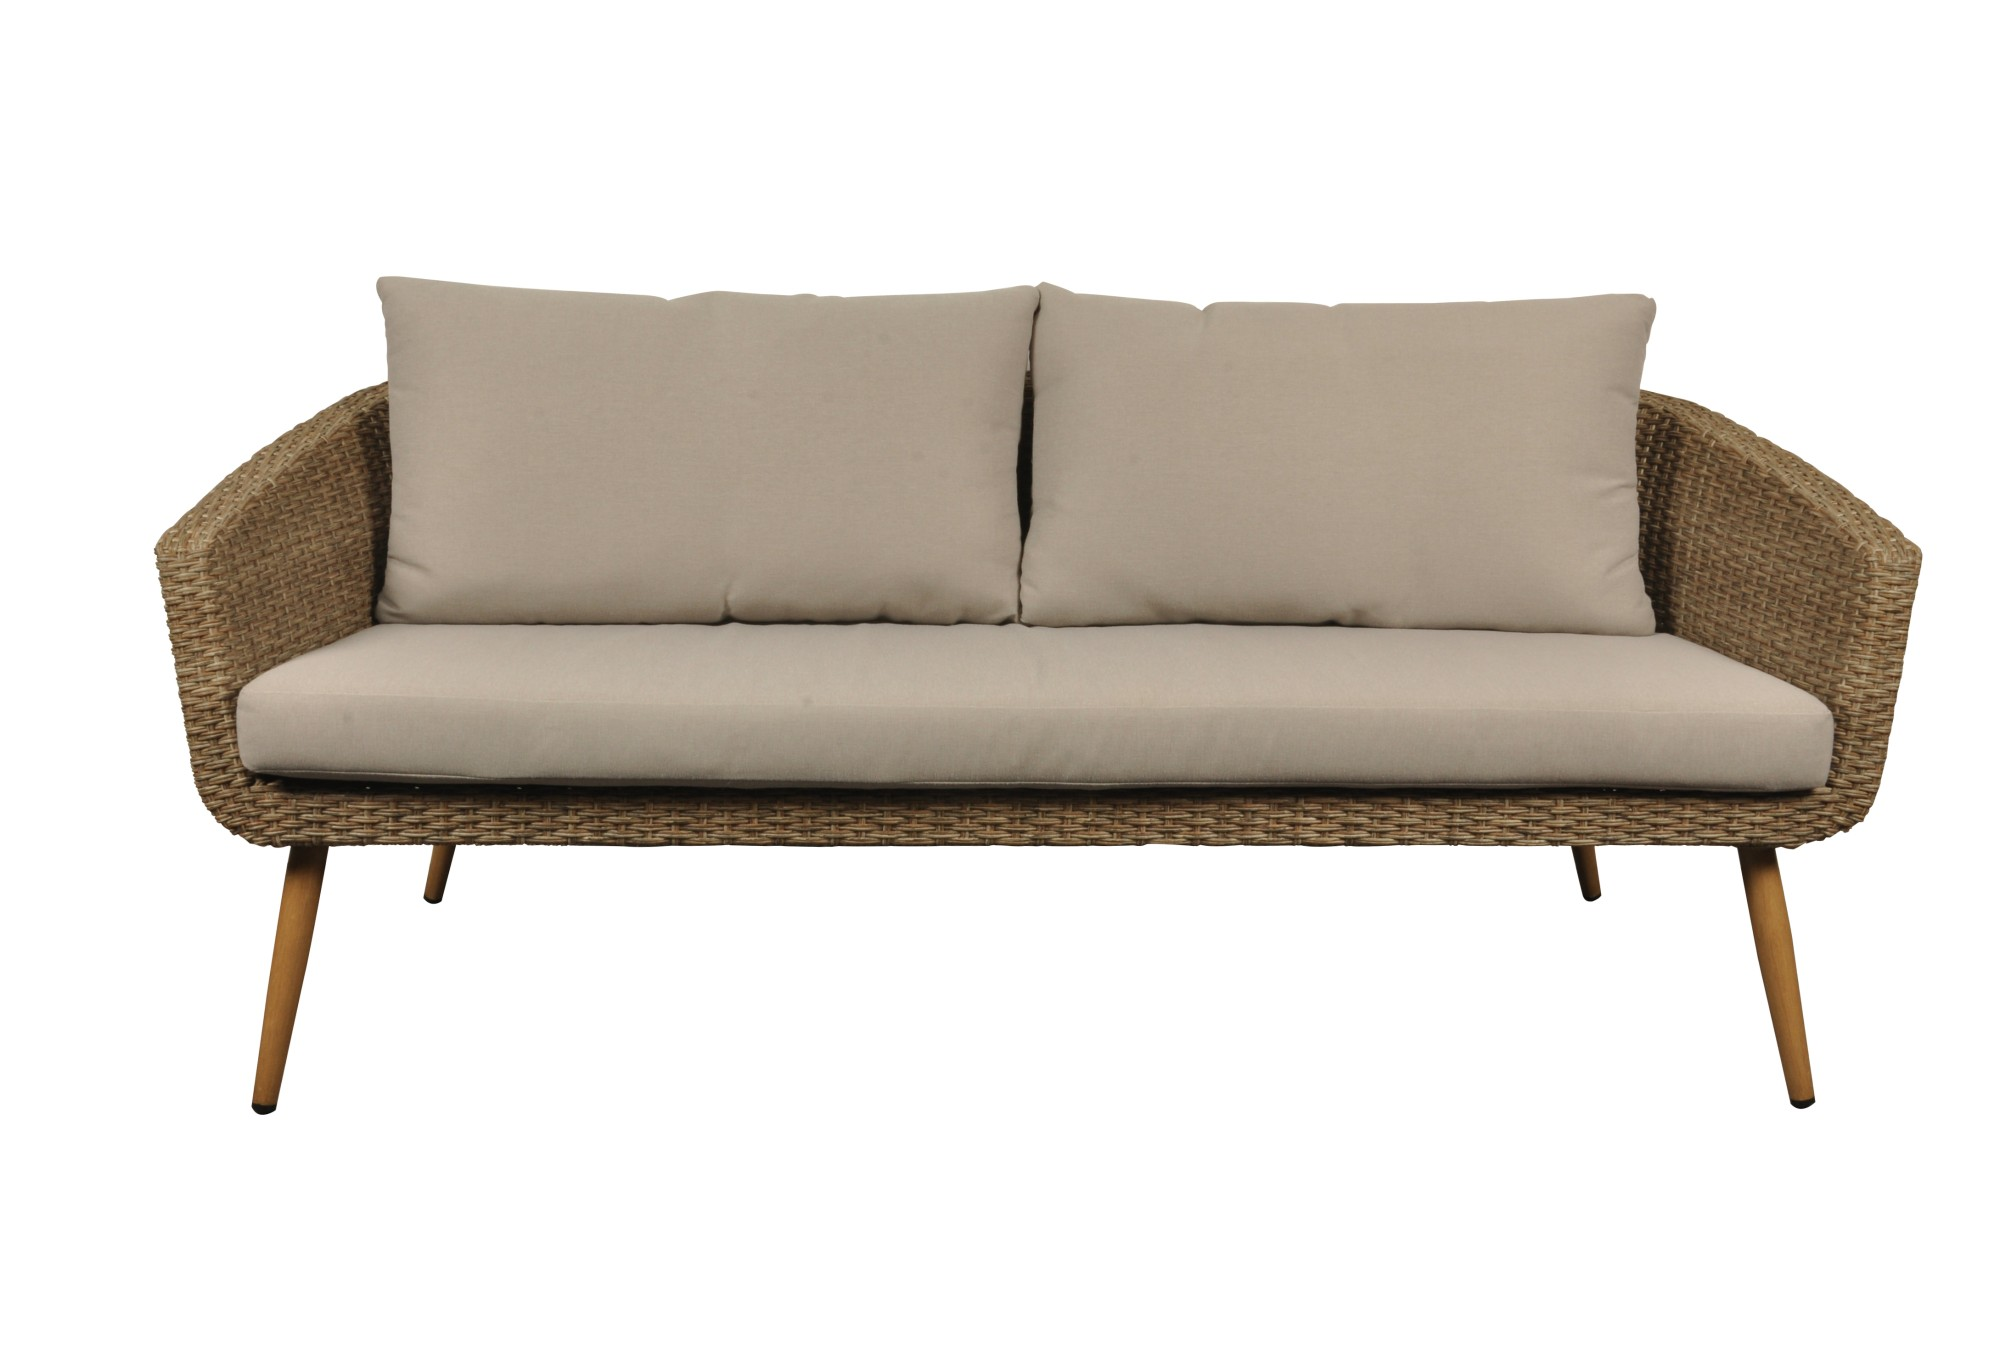 Full Size of Lounge Sofa Polyrattan Outdoor Couch Grau 2 Sitzer Balkon 2 Sitzer Ausziehbar Rattan Gartensofa Tchibo Garden Set Garten Pokoon 3 Pers Auflagen Natur Beige Sofa Polyrattan Sofa